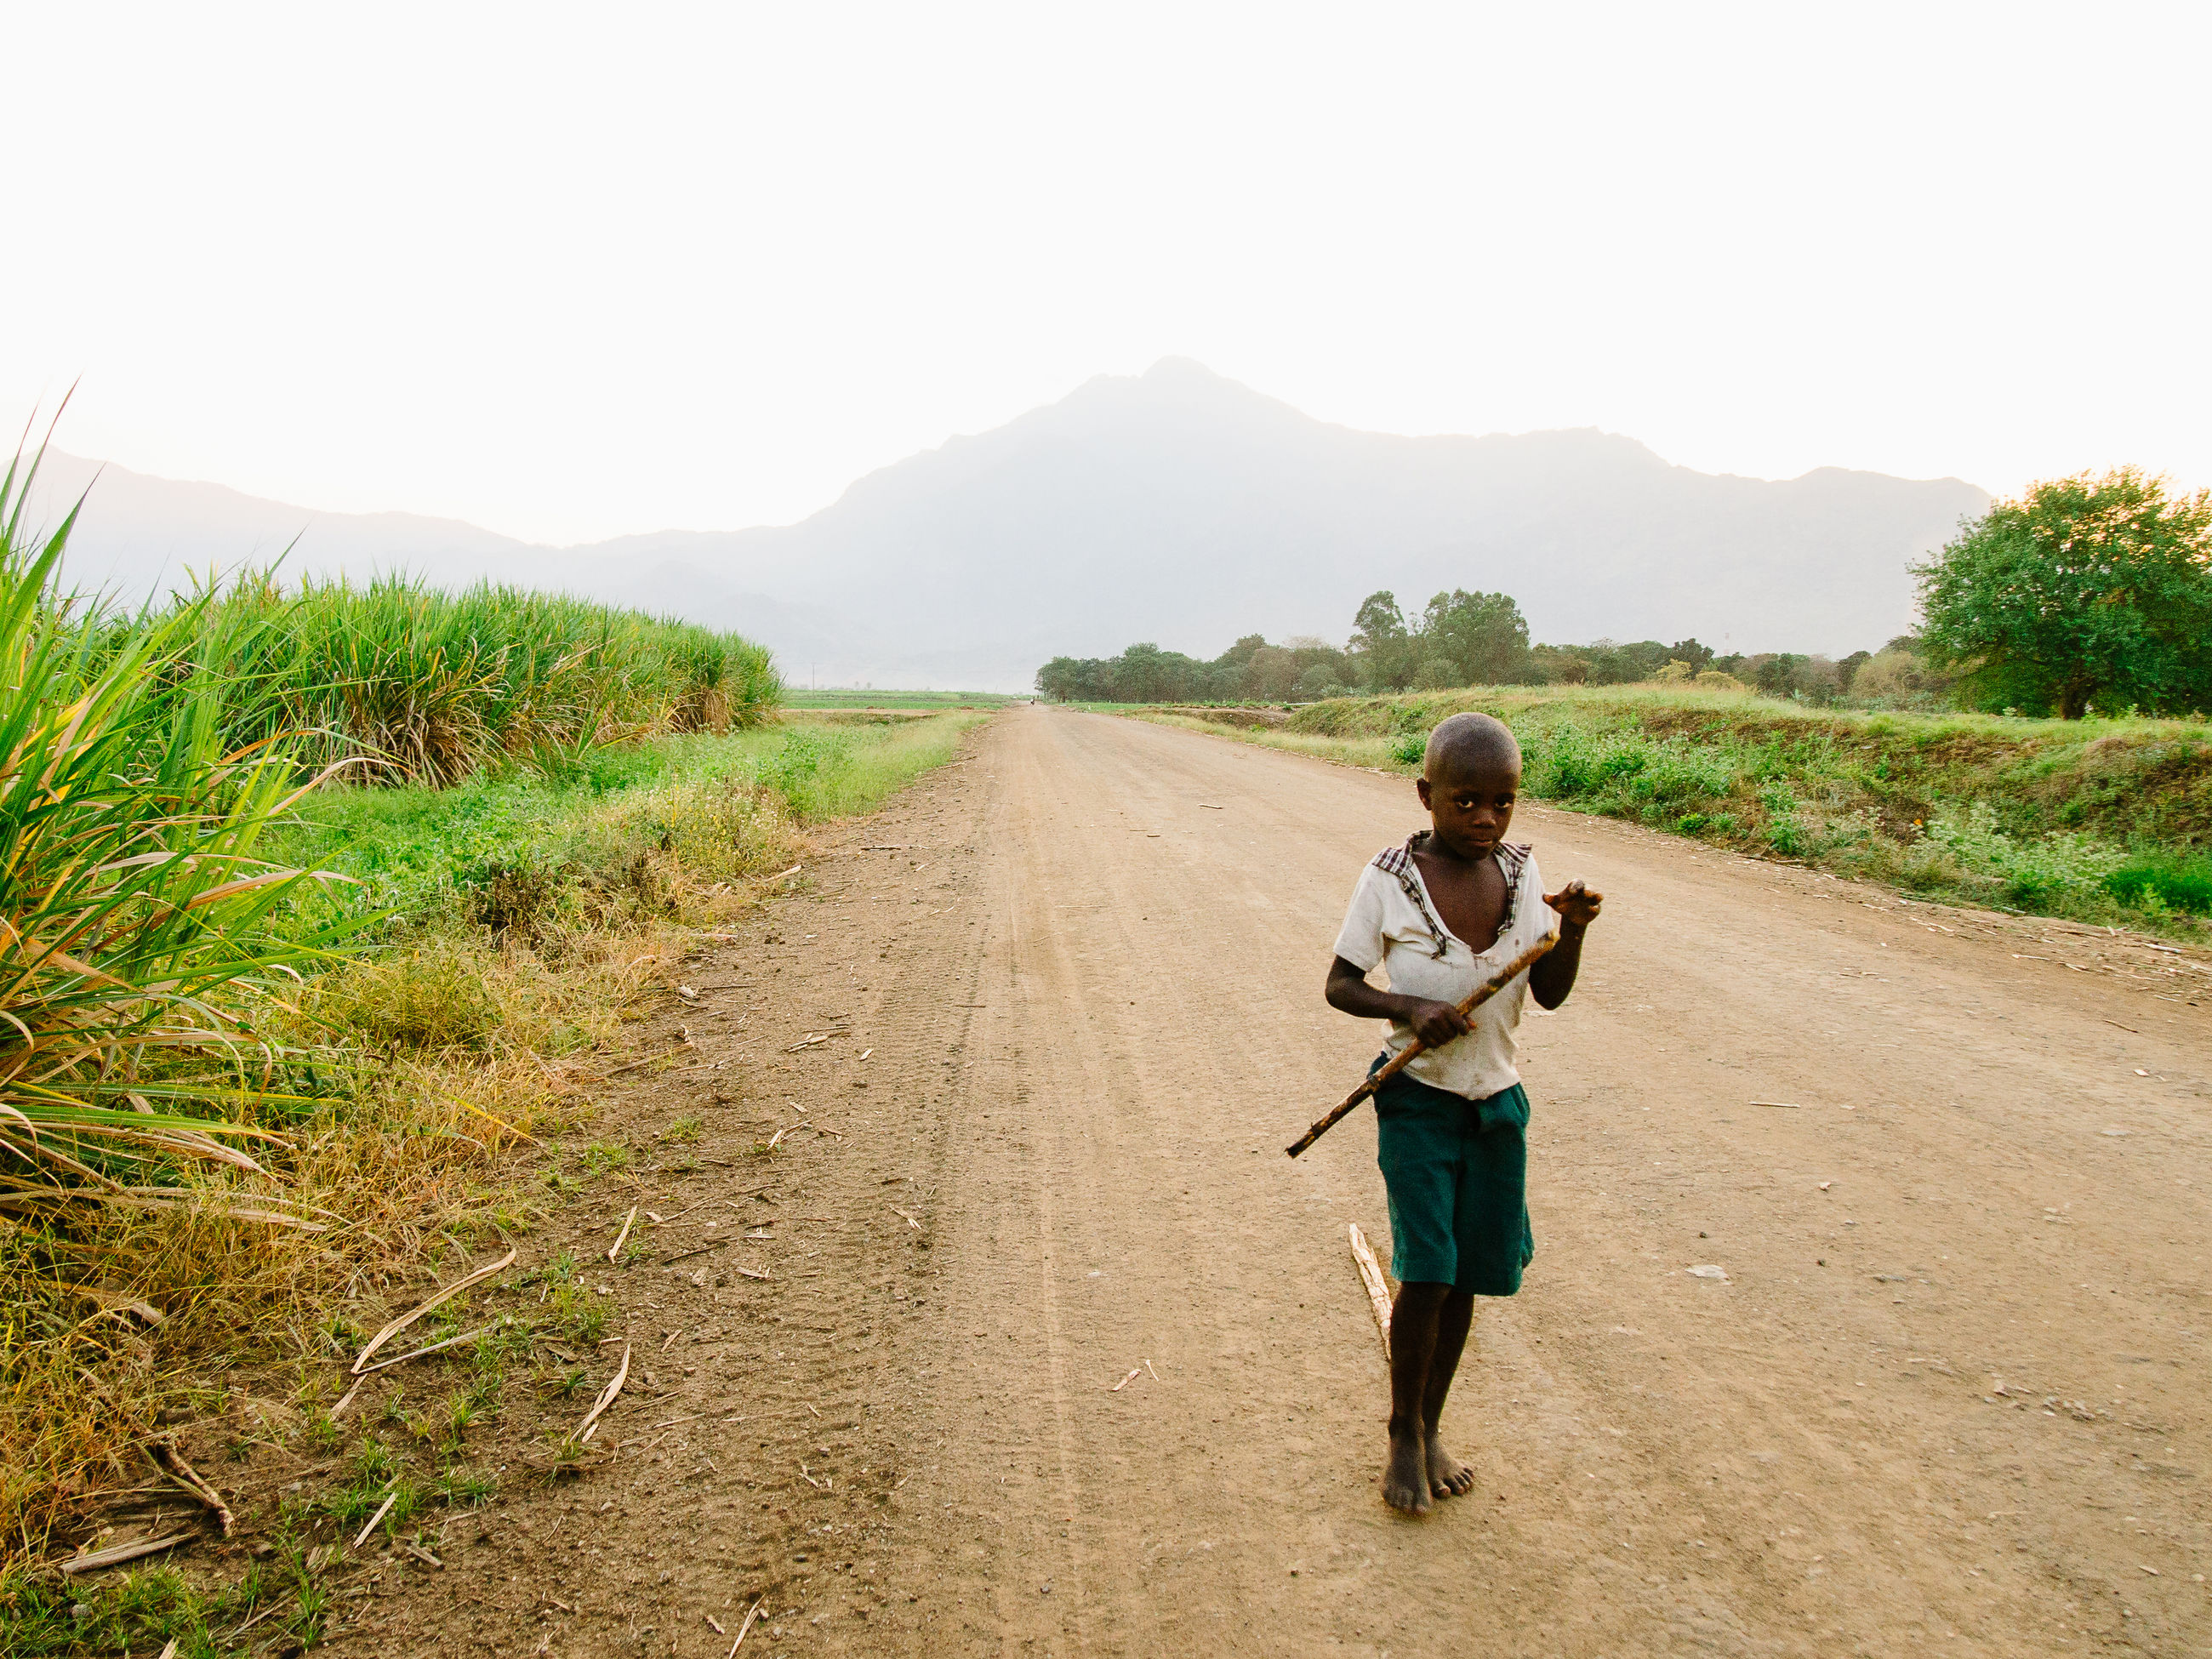 full length, lifestyles, casual clothing, leisure activity, rear view, childhood, clear sky, boys, walking, grass, field, landscape, the way forward, elementary age, sky, dirt road, girls, backpack